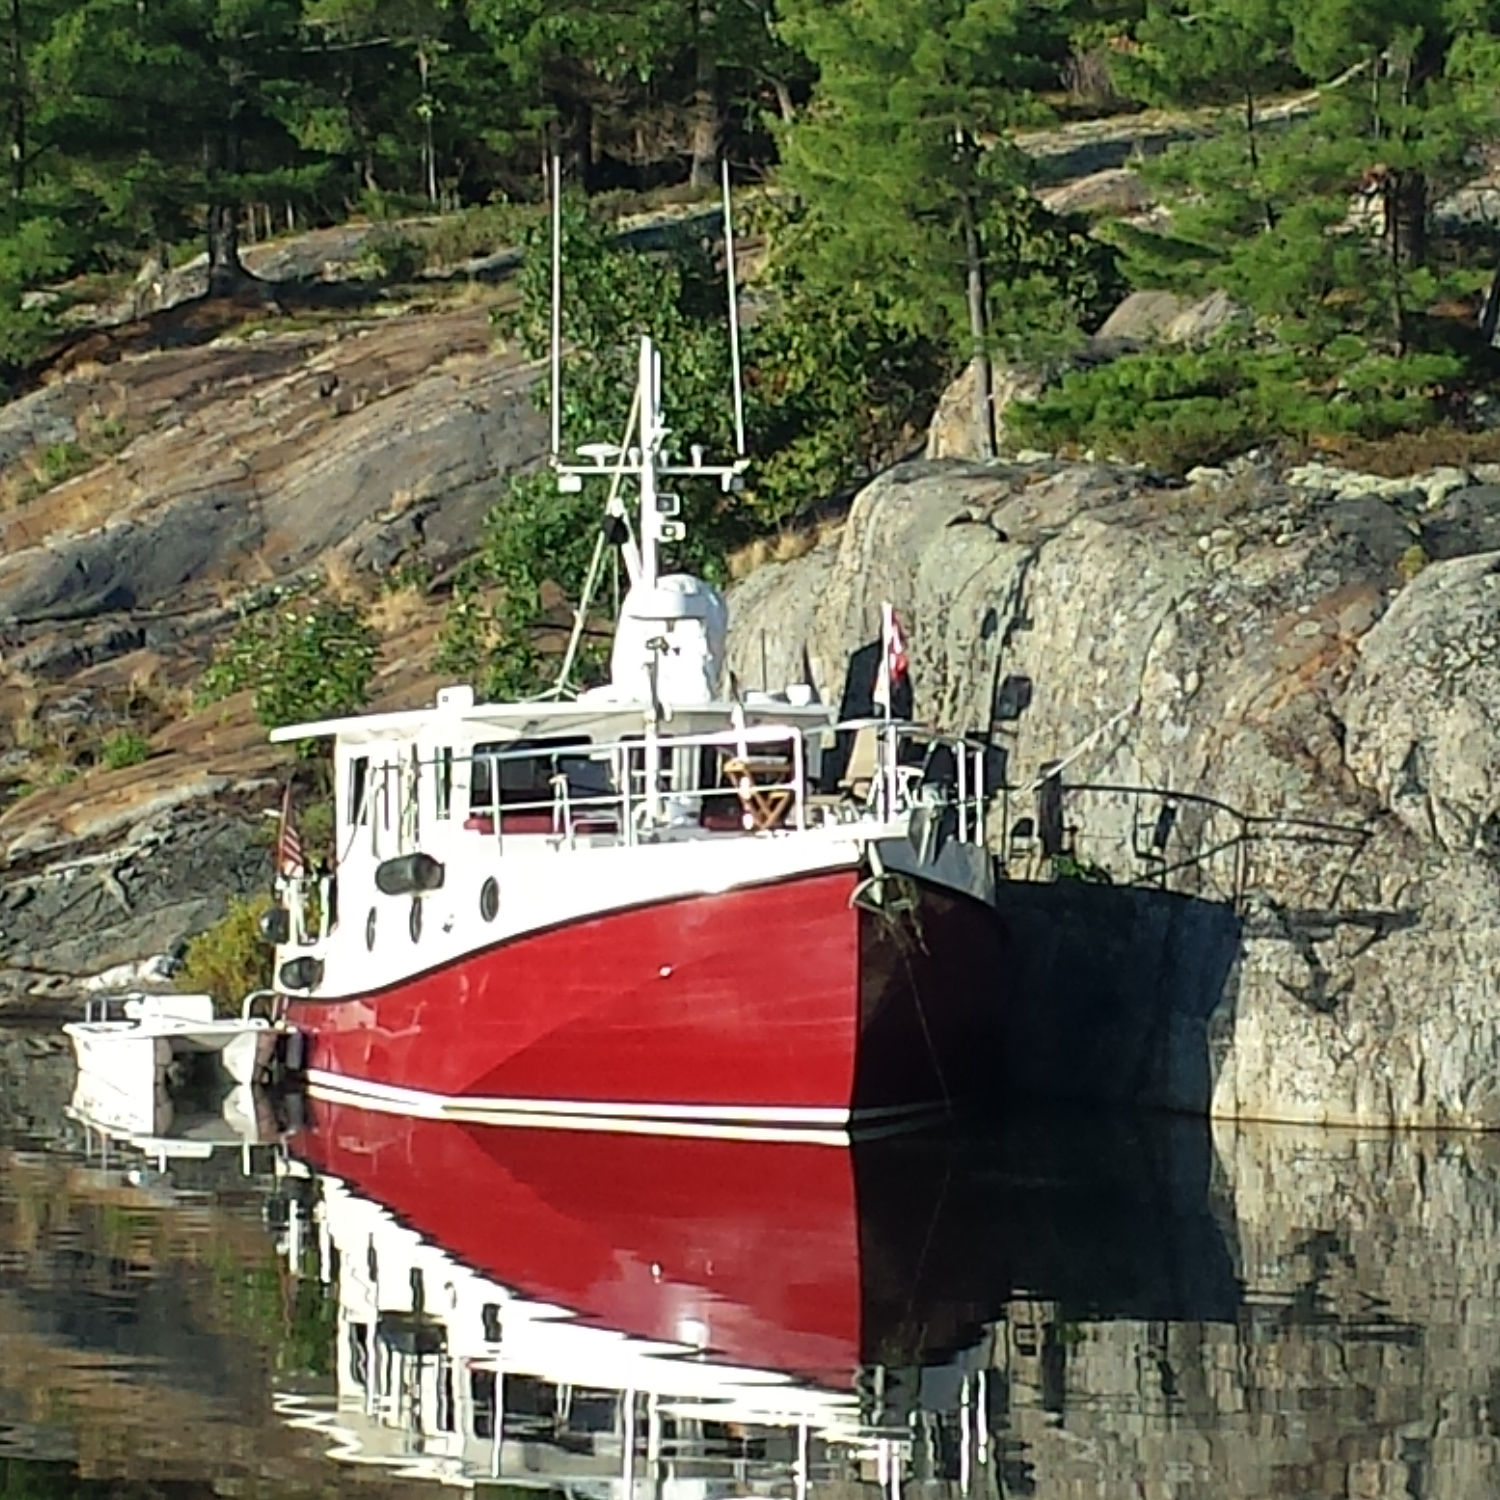 Red and White Boat Docked By Giant Rock Mountains